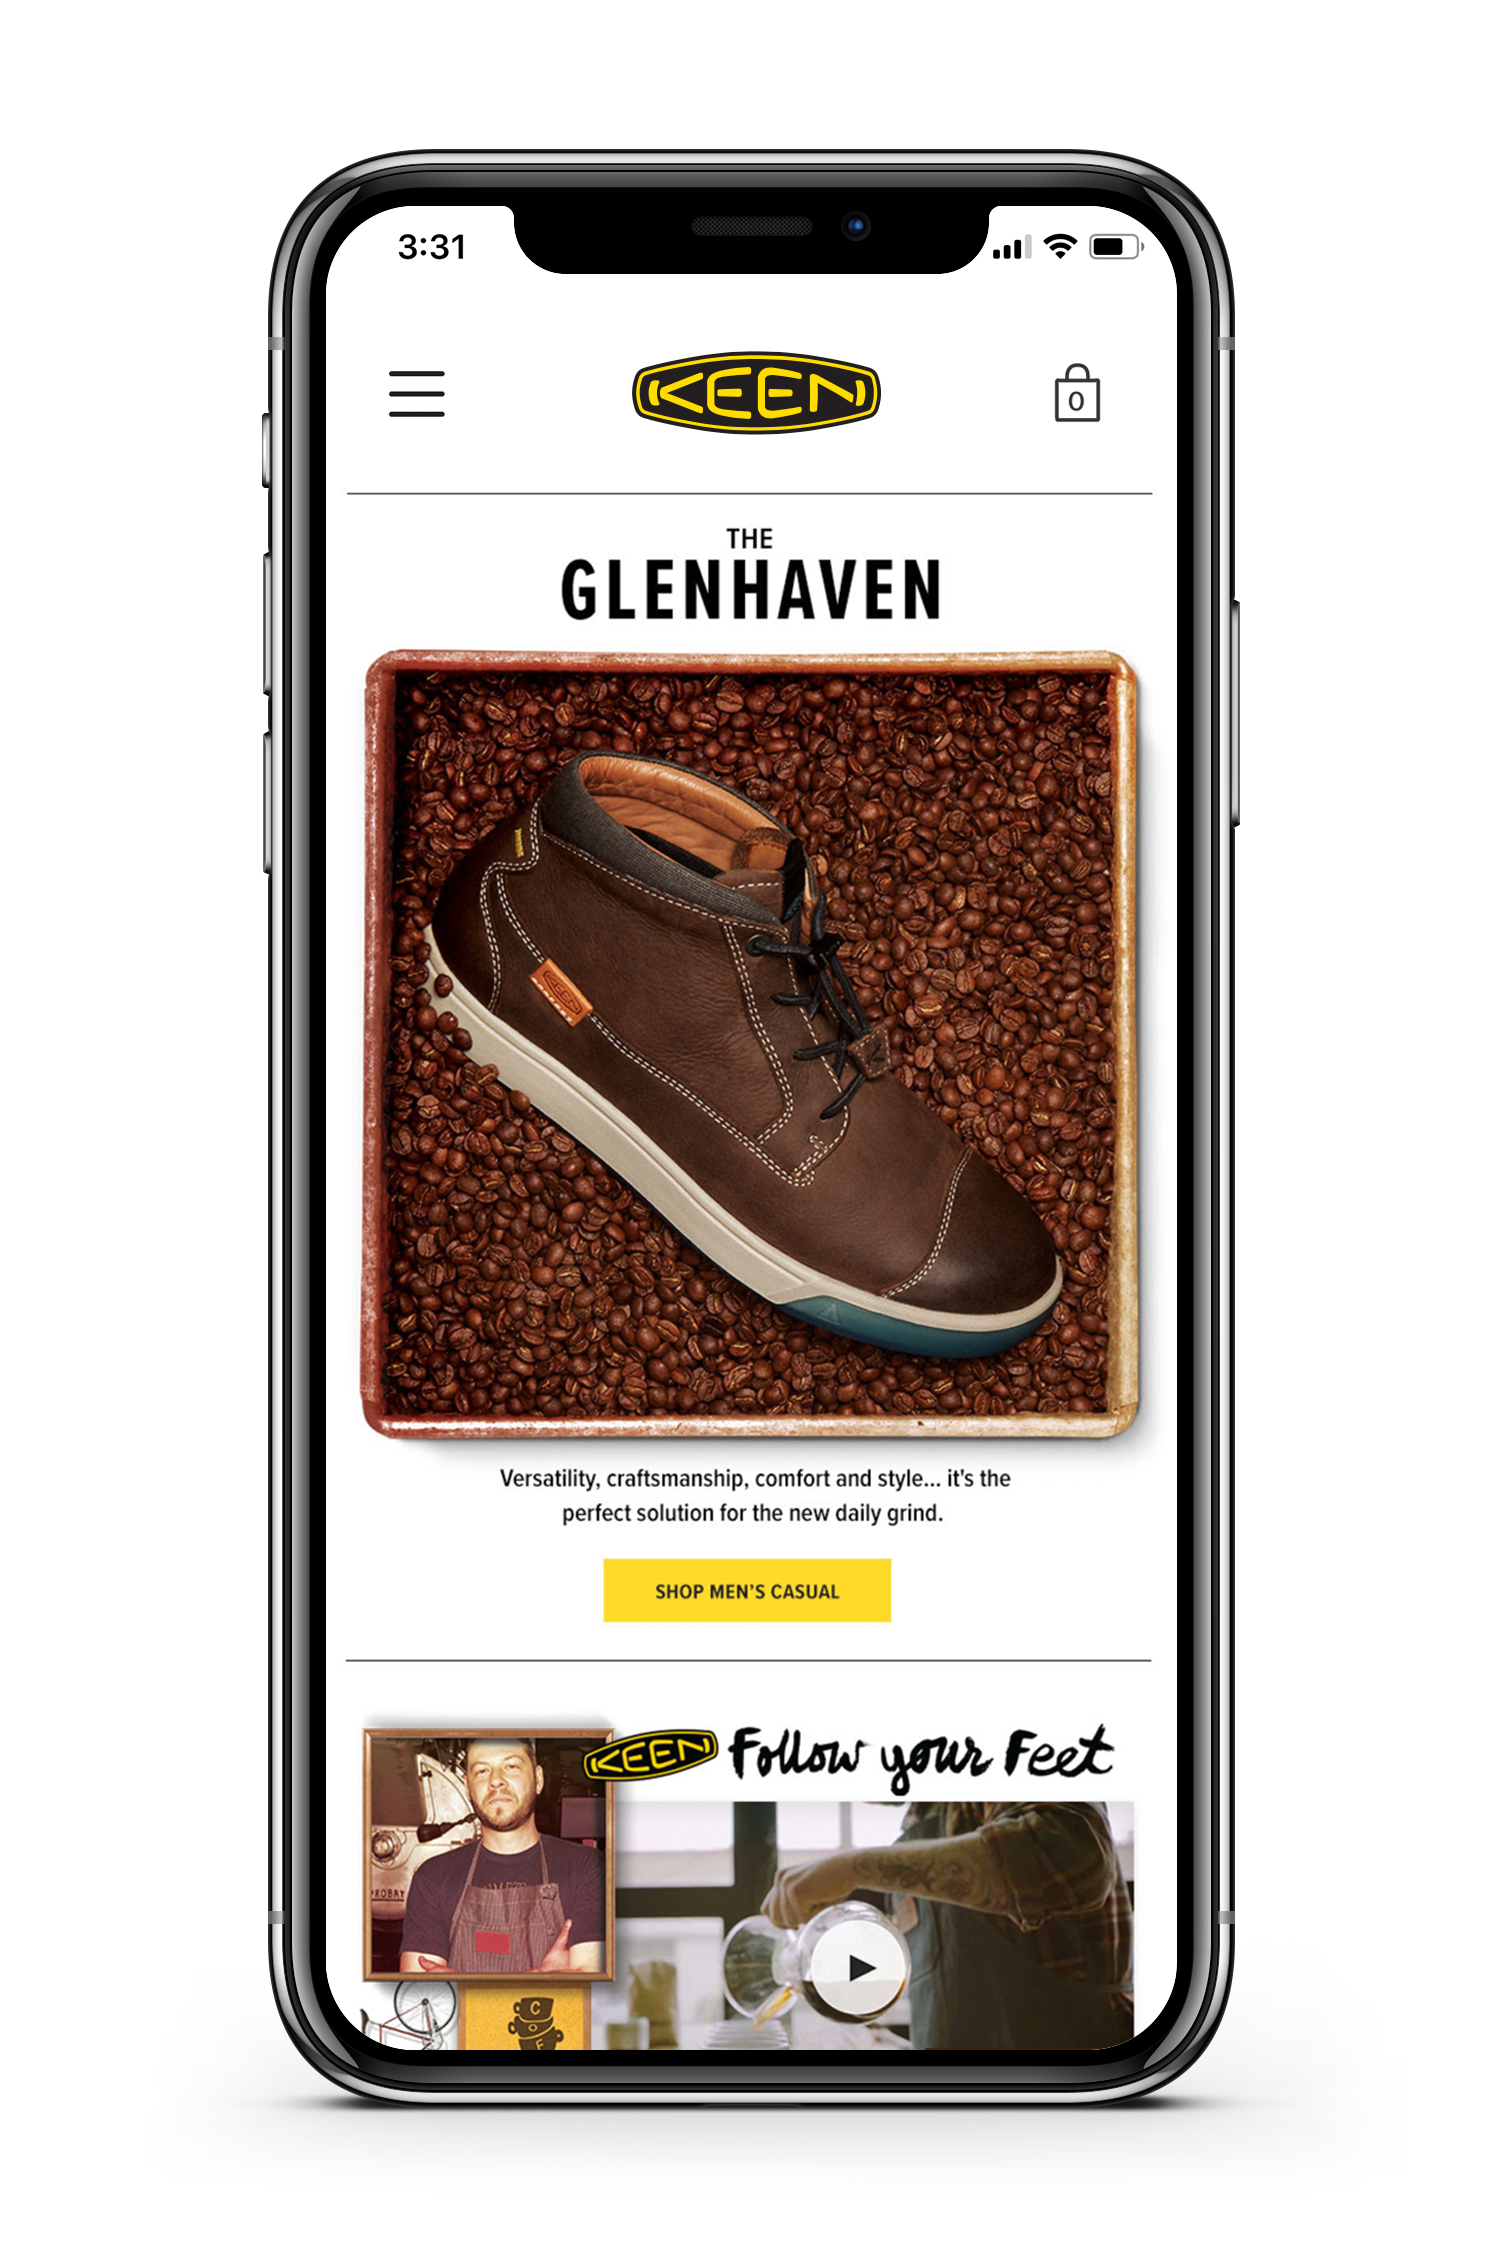 Keen website product display page shown on smartphone